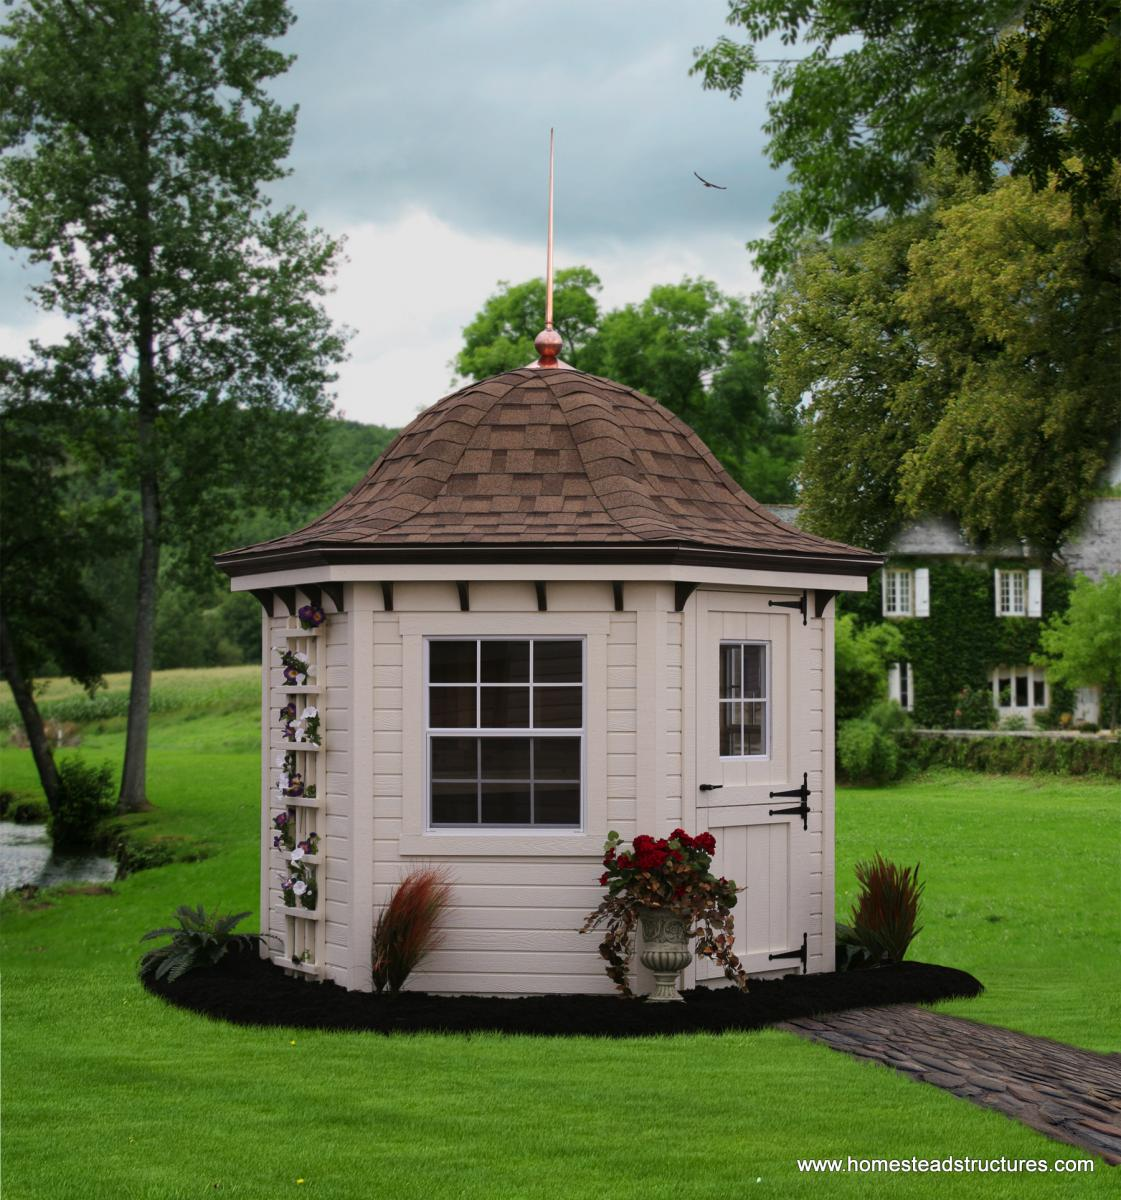 Homestead Gardens Landscaping: Garden Belles - Hexagonal Sheds